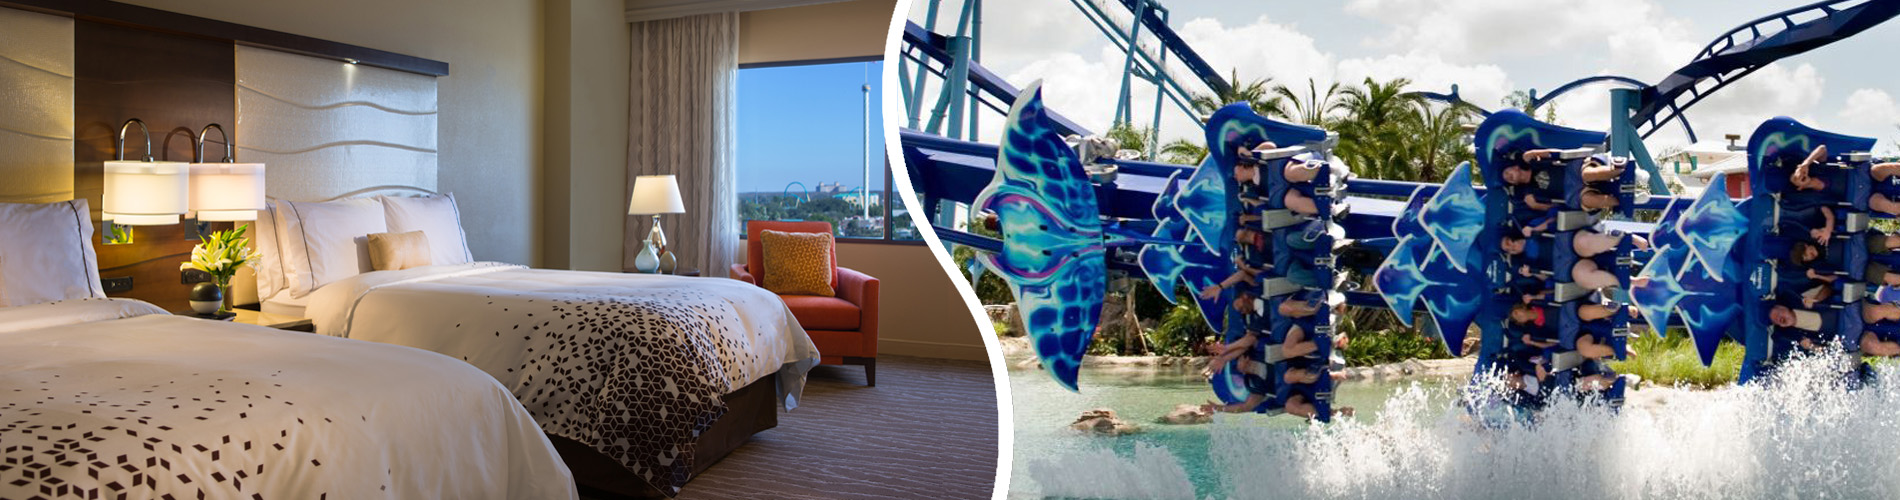 Vacation Packages available at SeaWorld Orlando